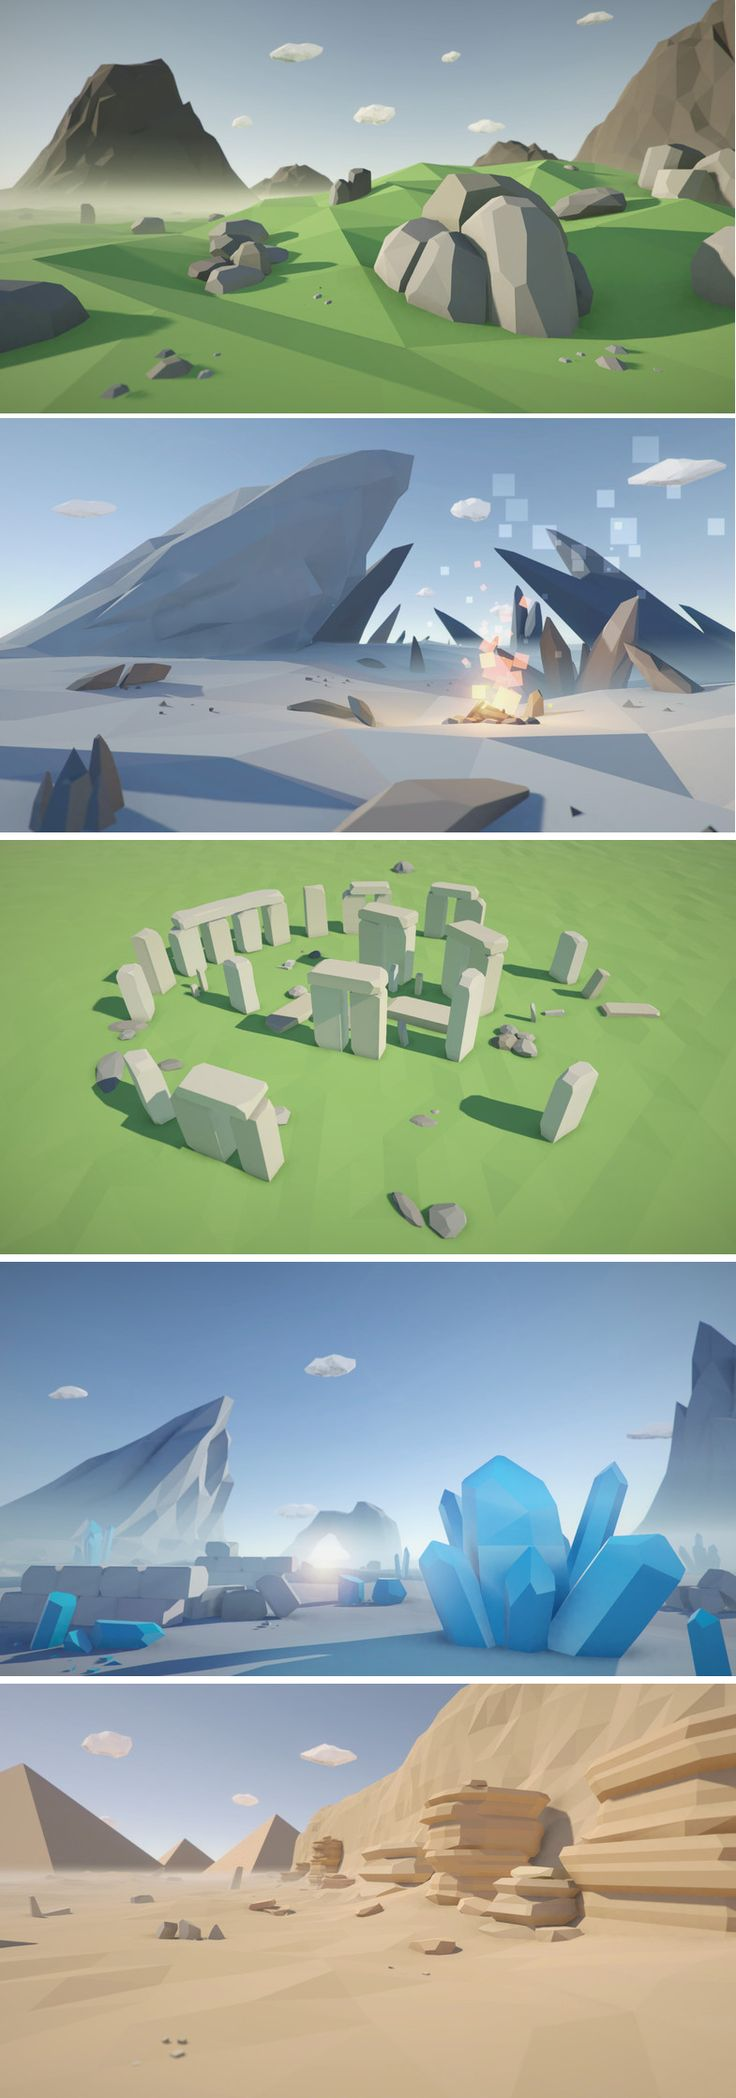 Low Poly Rocks Pack This package contains a huge variety of different rocks ready to use for your game levels. Just drag and drop prefabs to your scene and achieve beautiful results in no time. PC & mobile friendly.